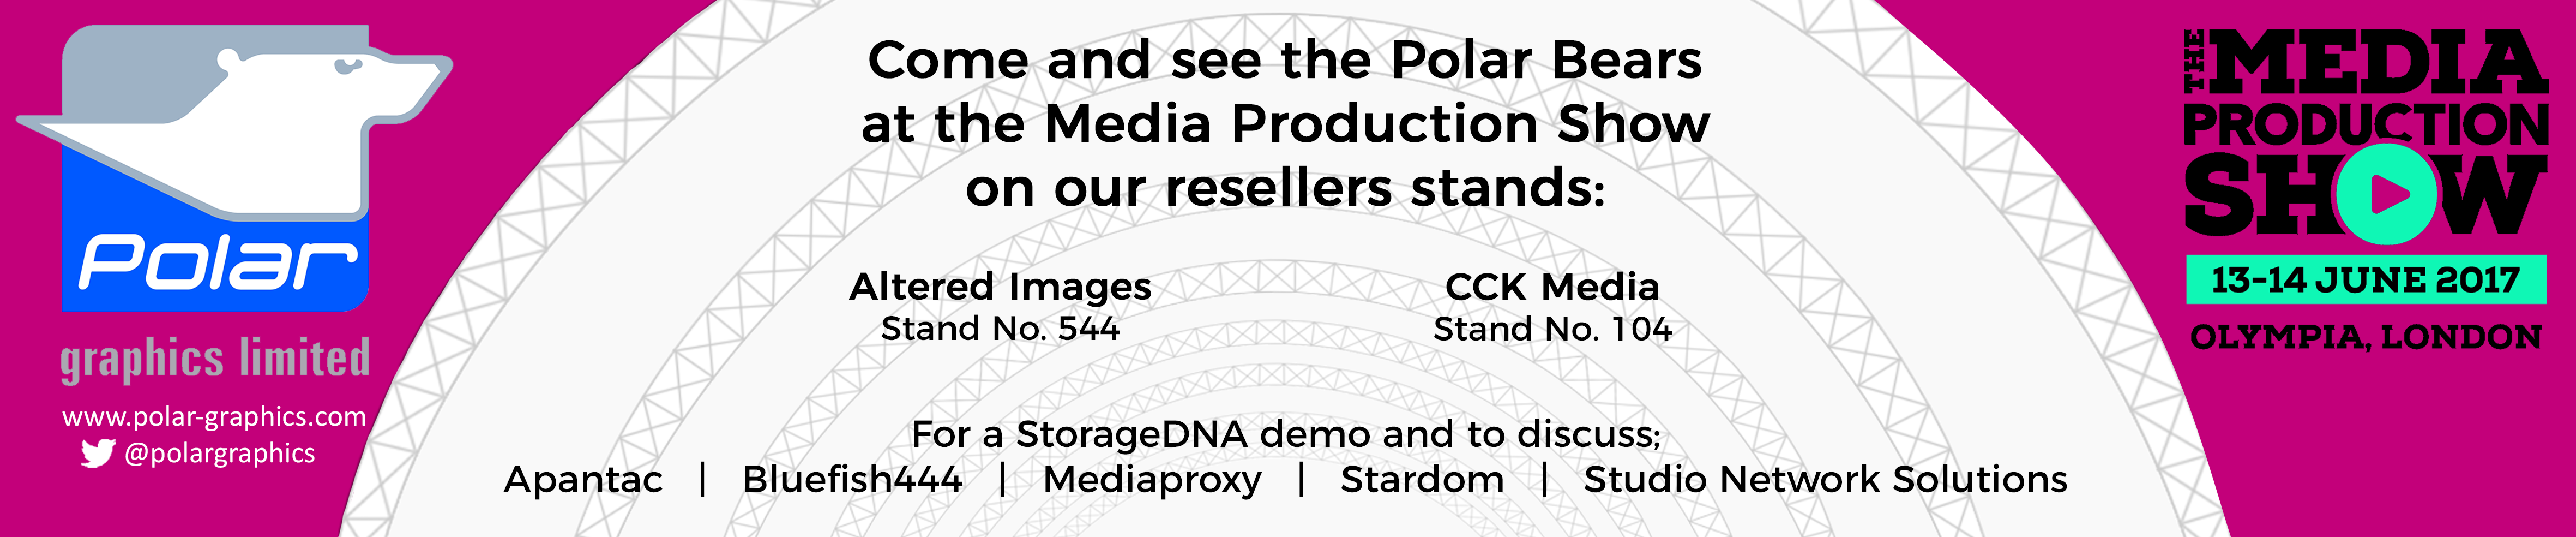 Plan Your Visit For The Media Production Show 2017